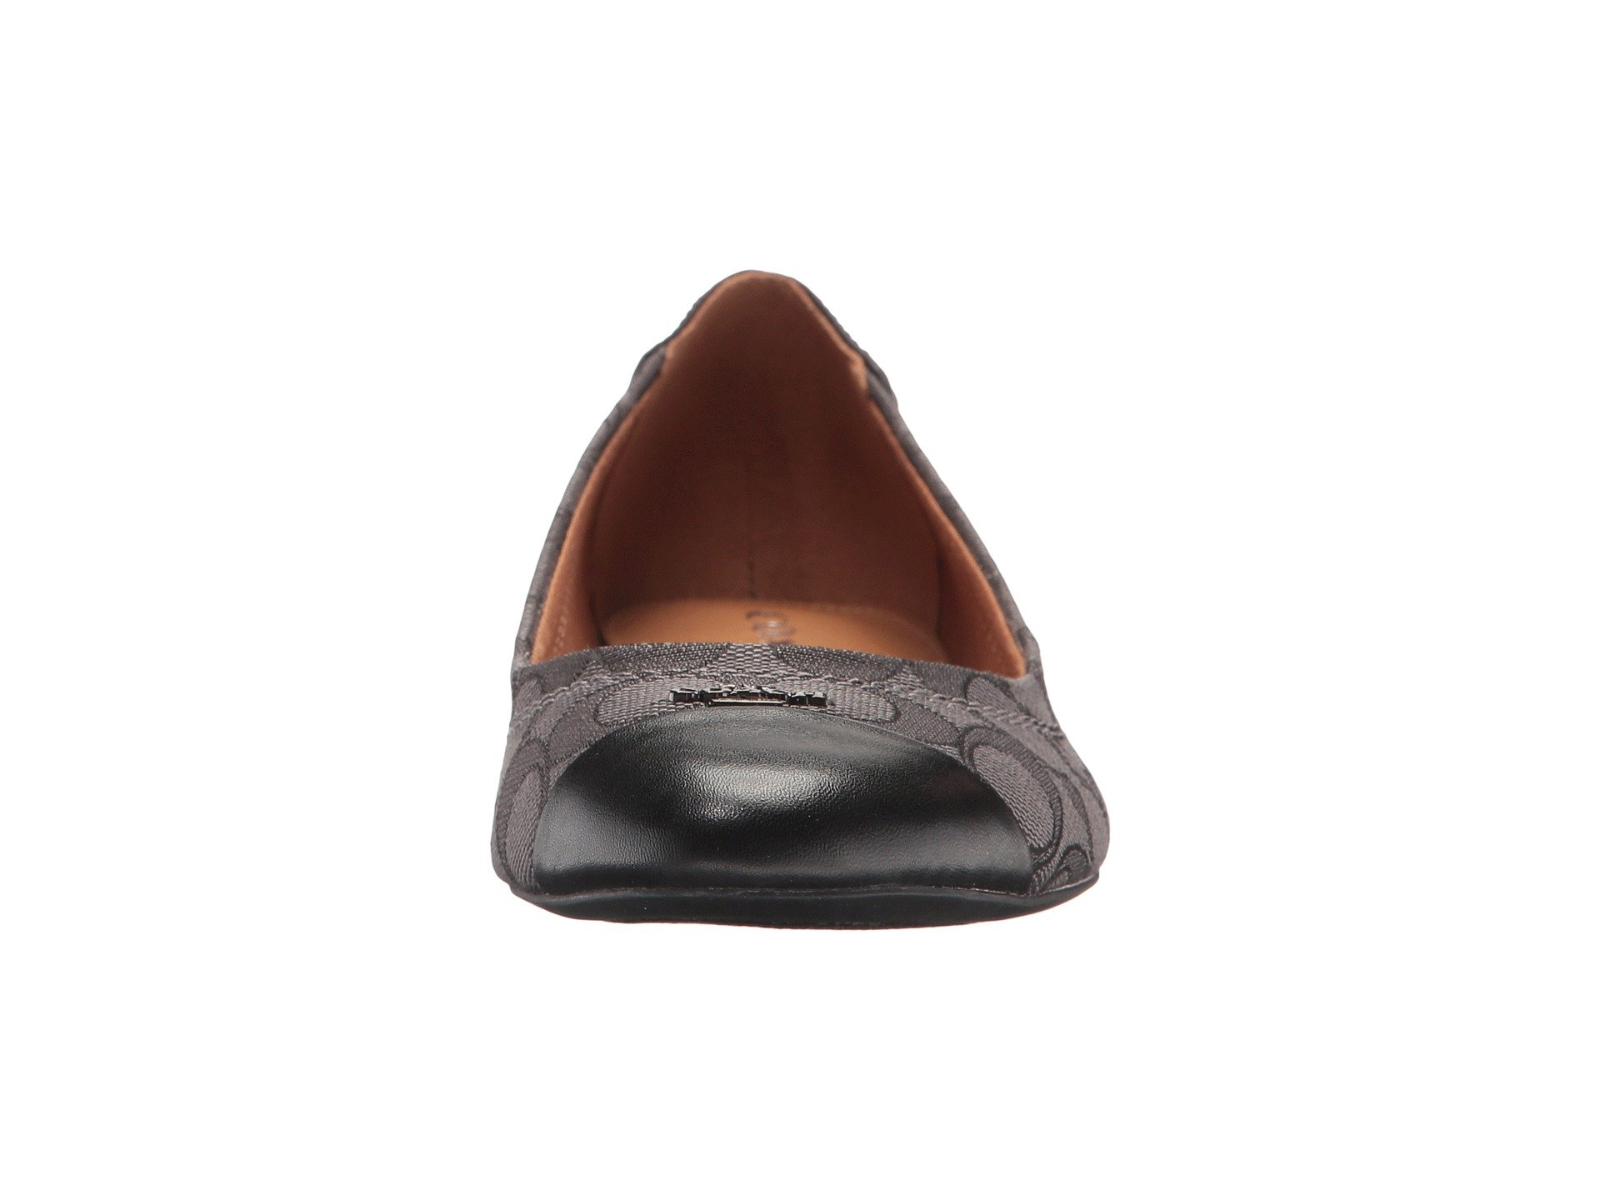 Coach Women's Chelsea Leather Cap Toe Slip on Flats for formal/Casual Wear